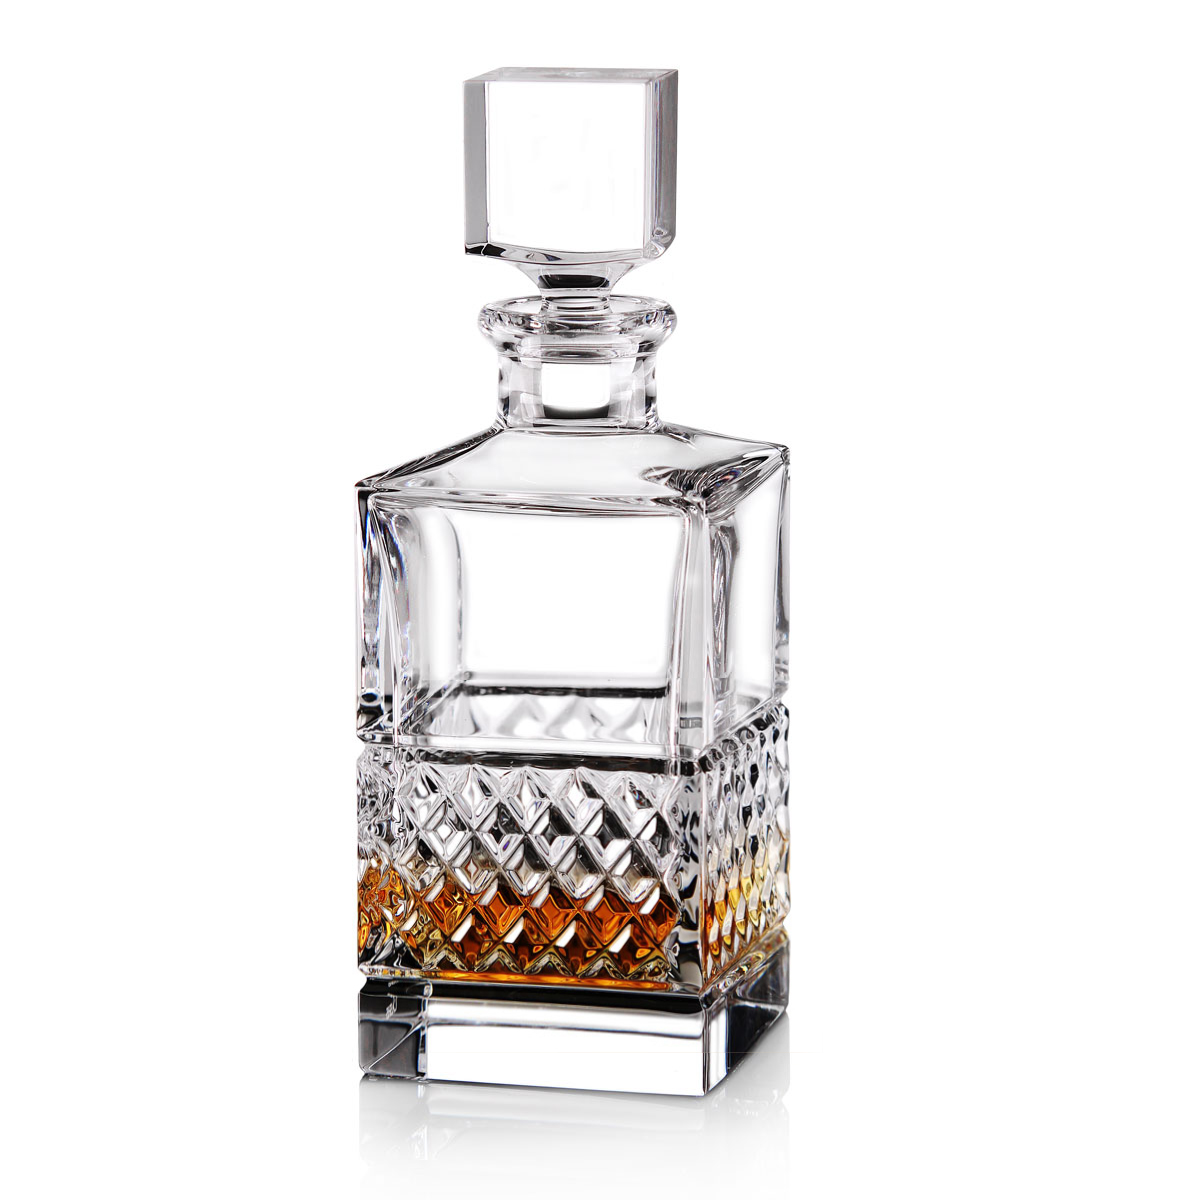 Cashs Ireland, Cooper Single Malt Whiskey Square Decanter